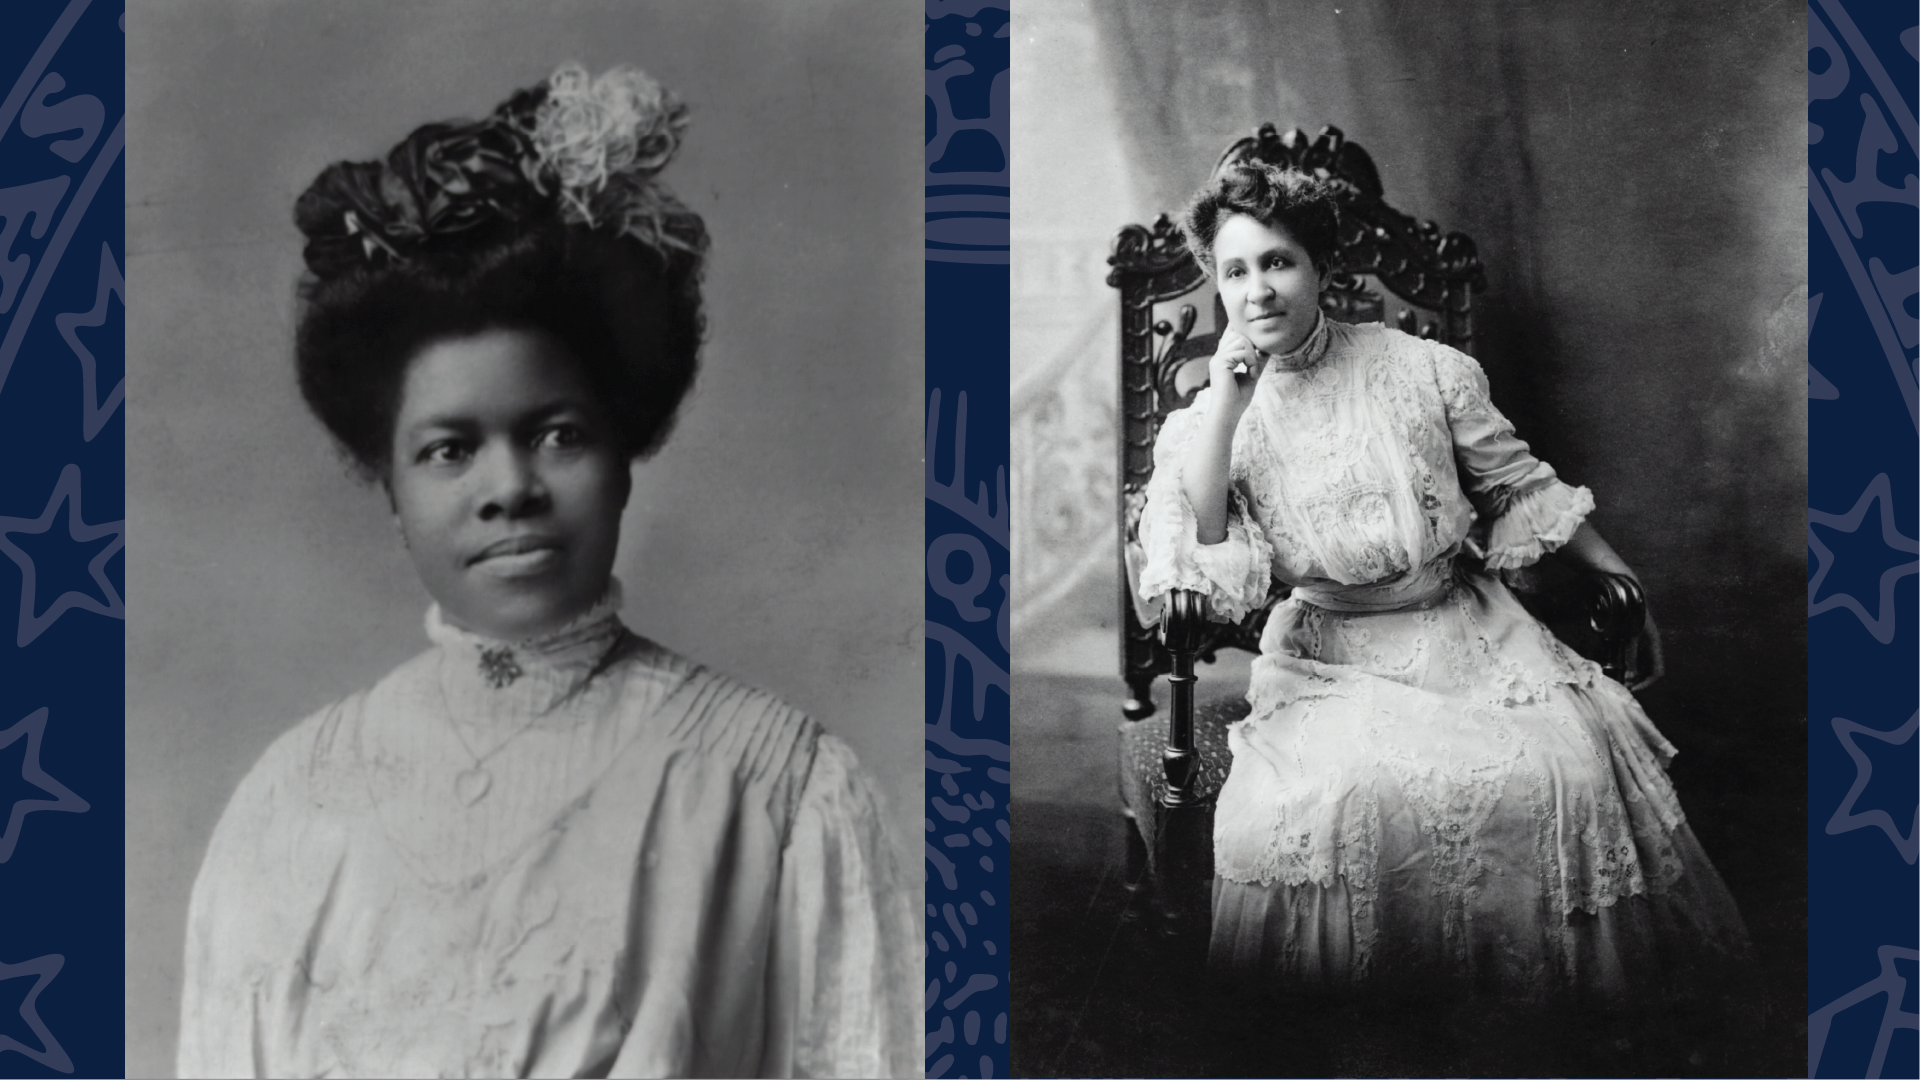 Black and white photos of Black suffragists Nannie Helen Burroughs and Mary Church Terrell